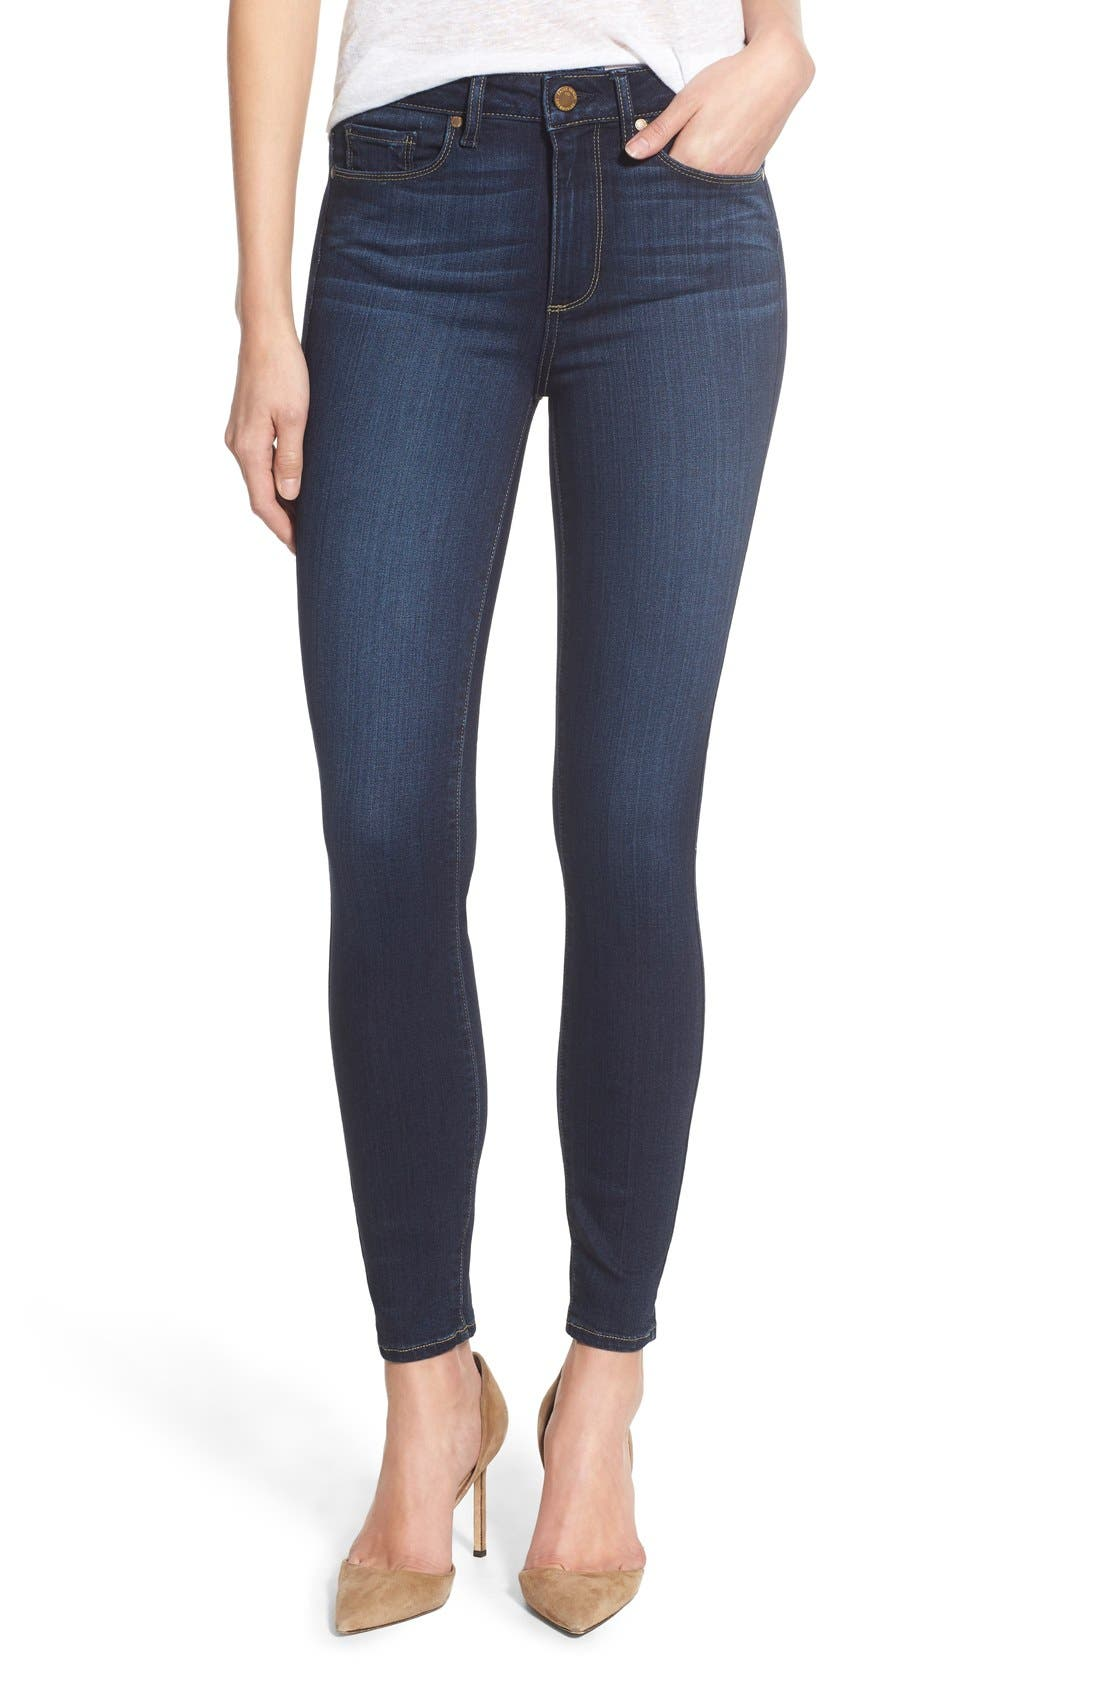 Alternate Image 1 Selected - PAIGE Transcend - Hoxton High Waist Ankle Ultra Skinny Jeans (Hartmann)